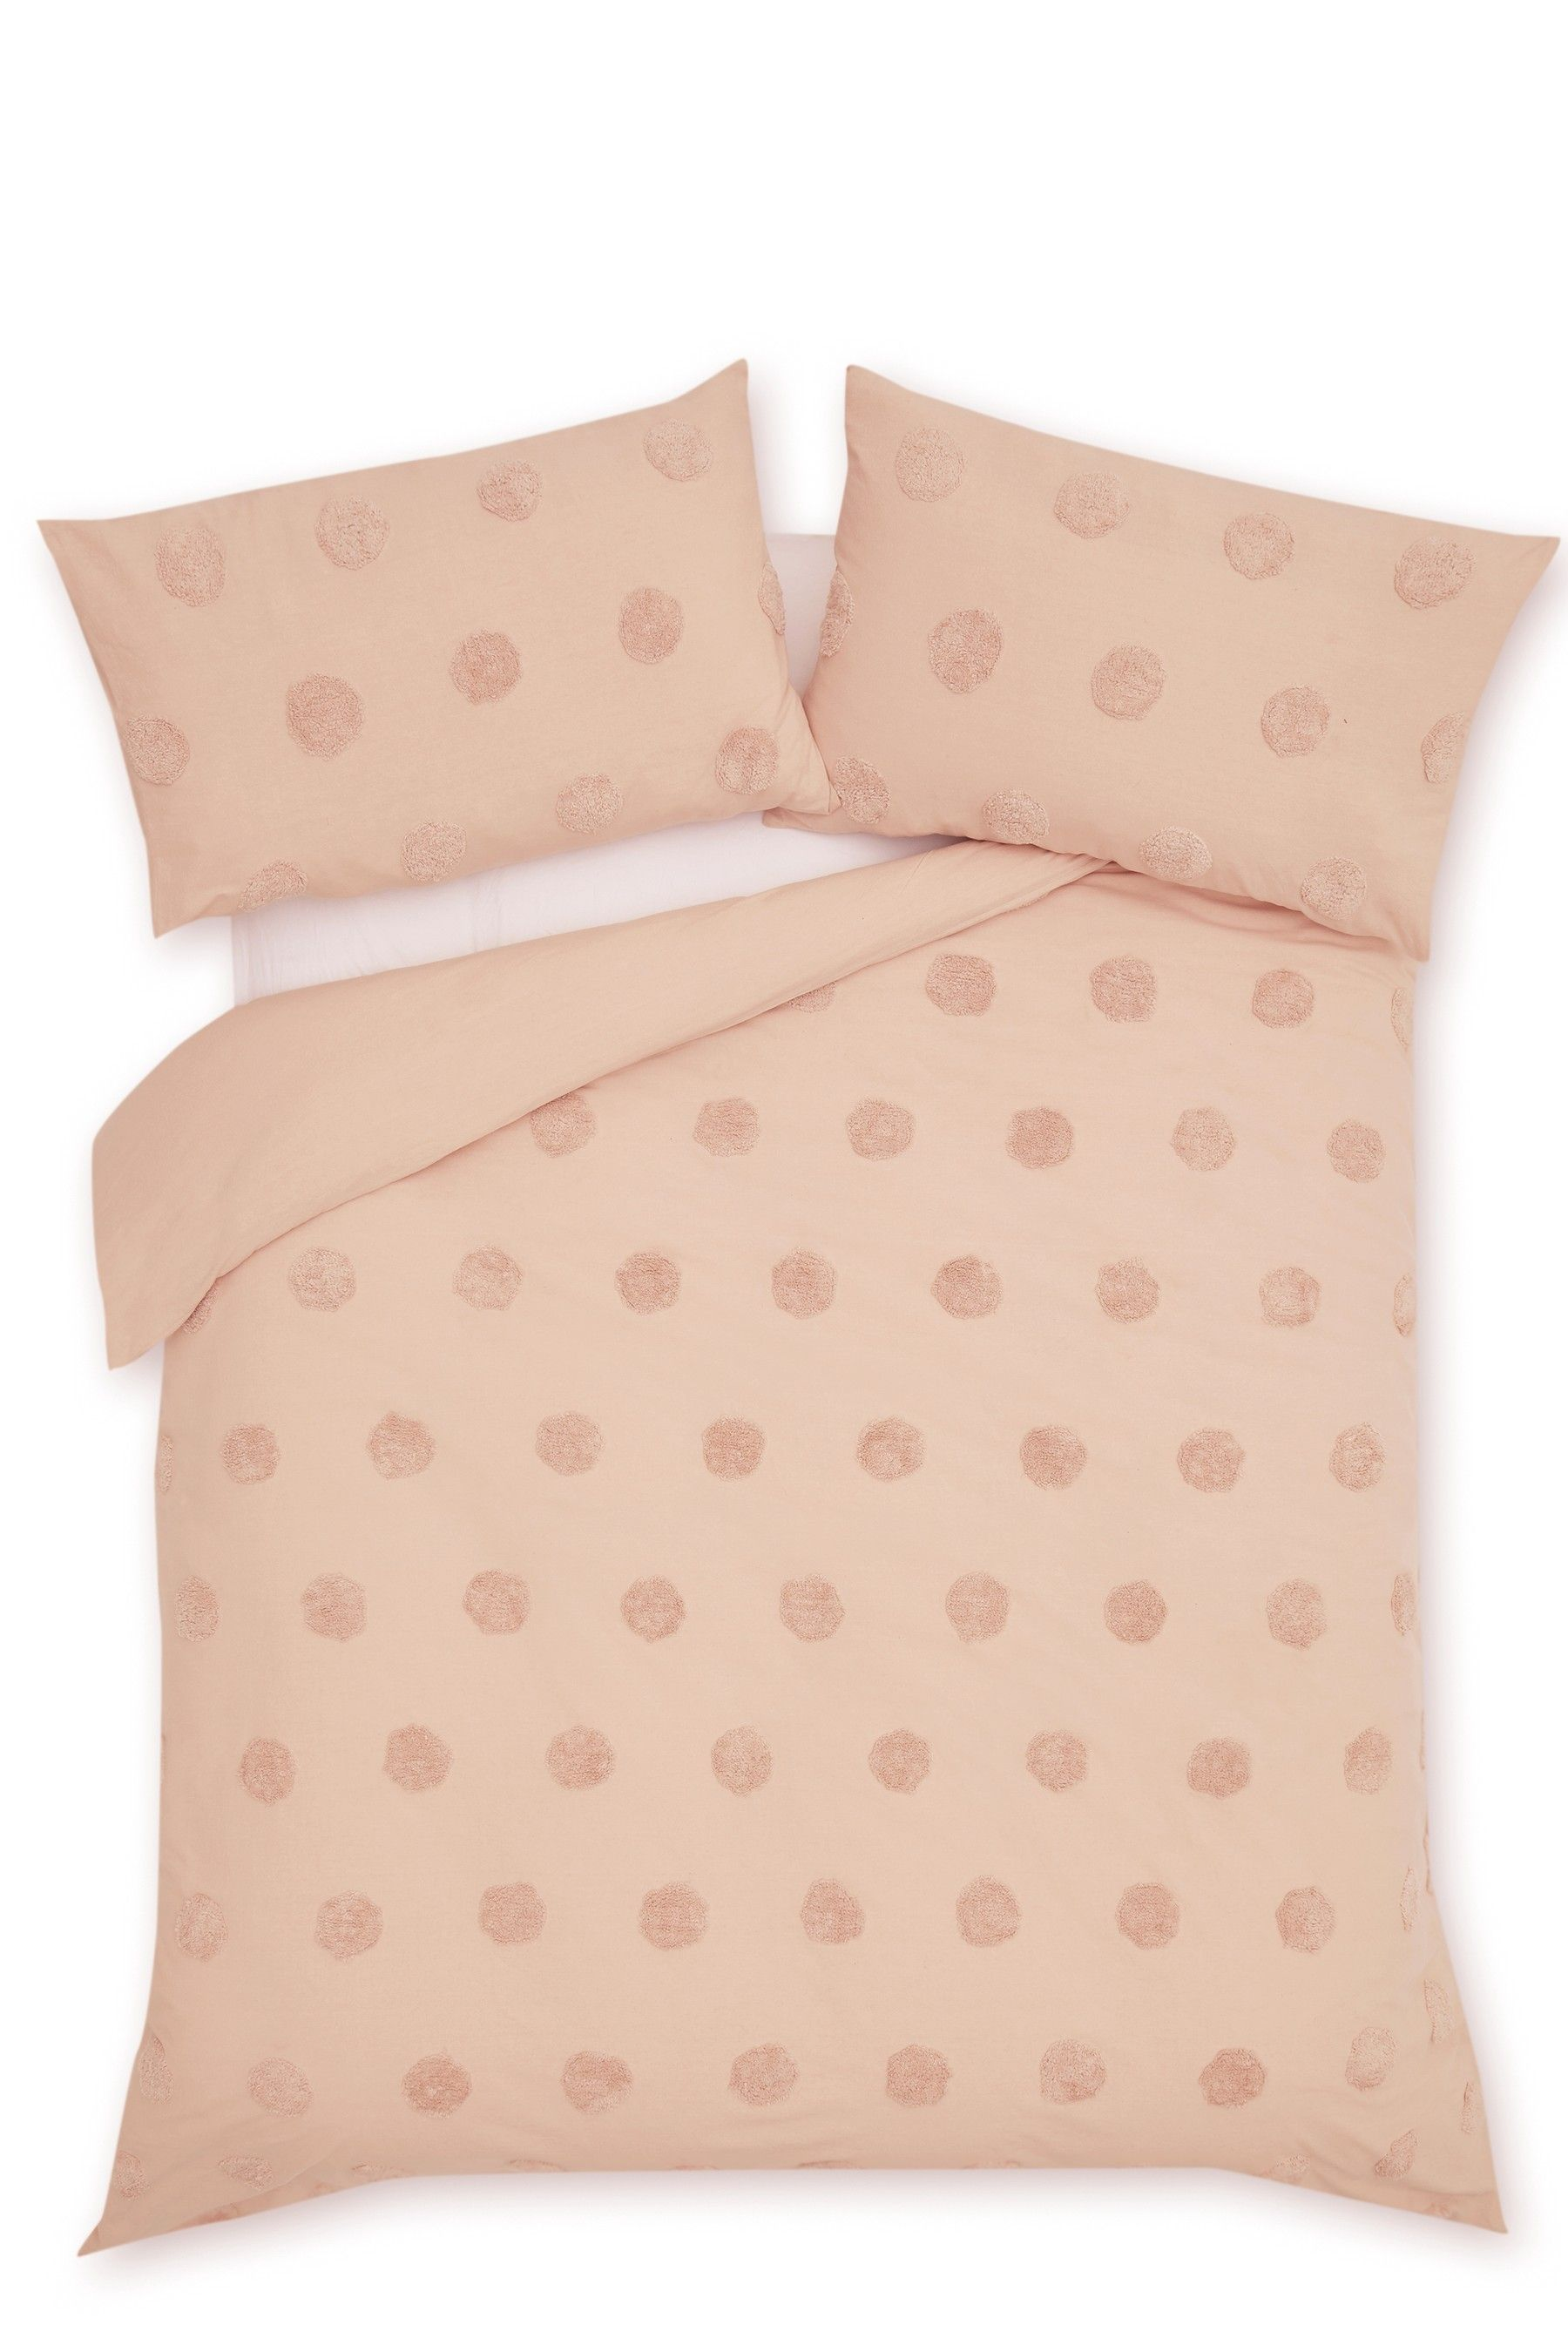 Buy Tufted Spot Duvet Cover and Pillowcase Set from the